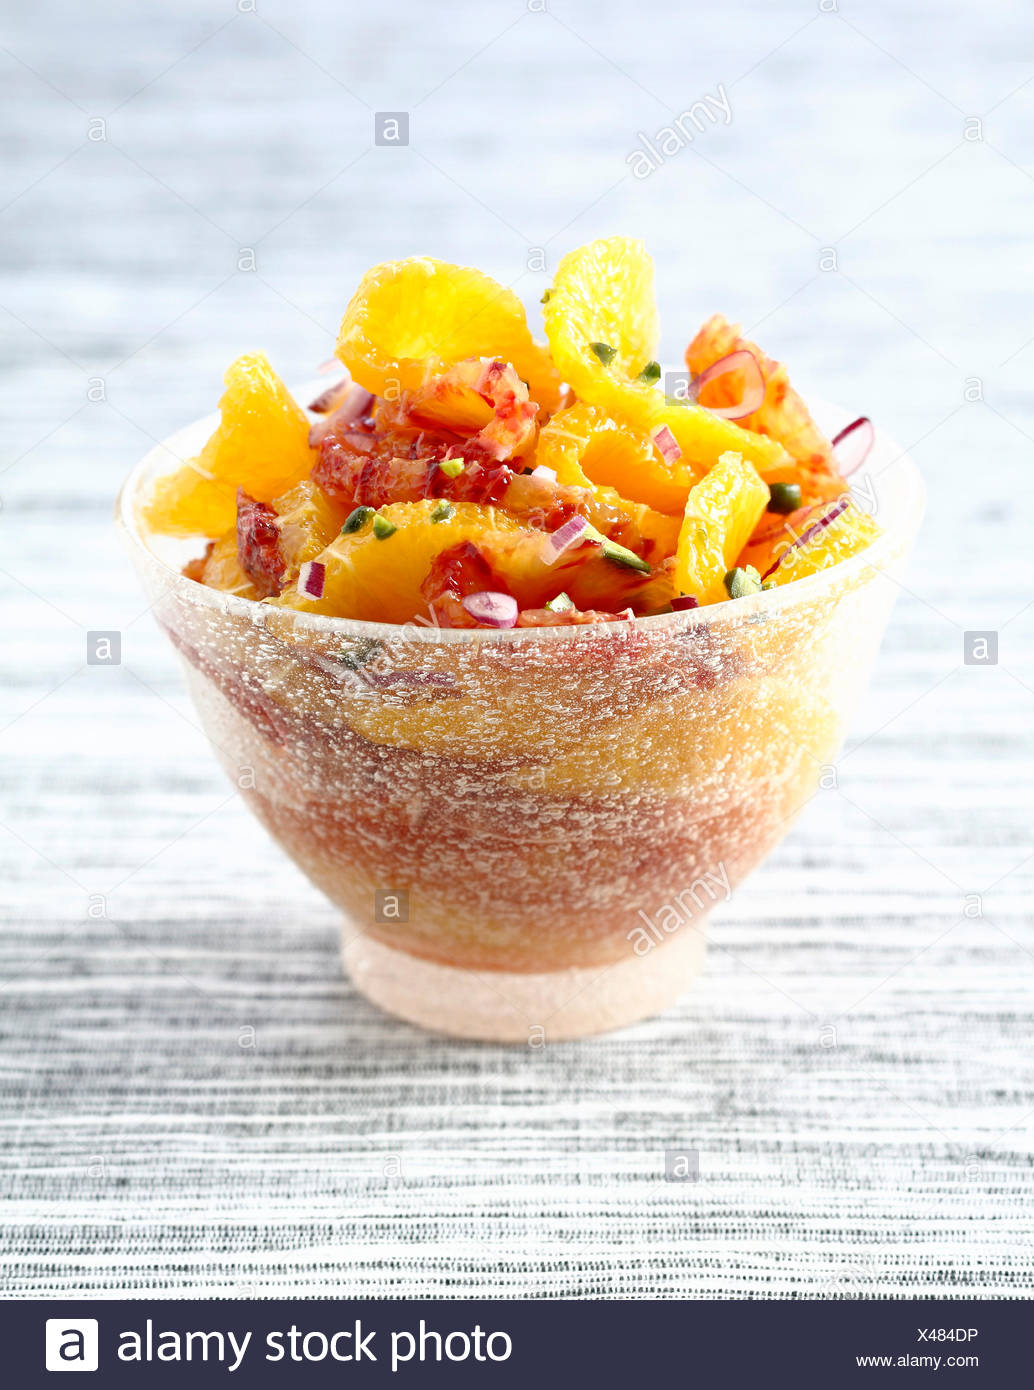 Orange fruit salad with mild onions,pistachios and argan oil - Stock Image